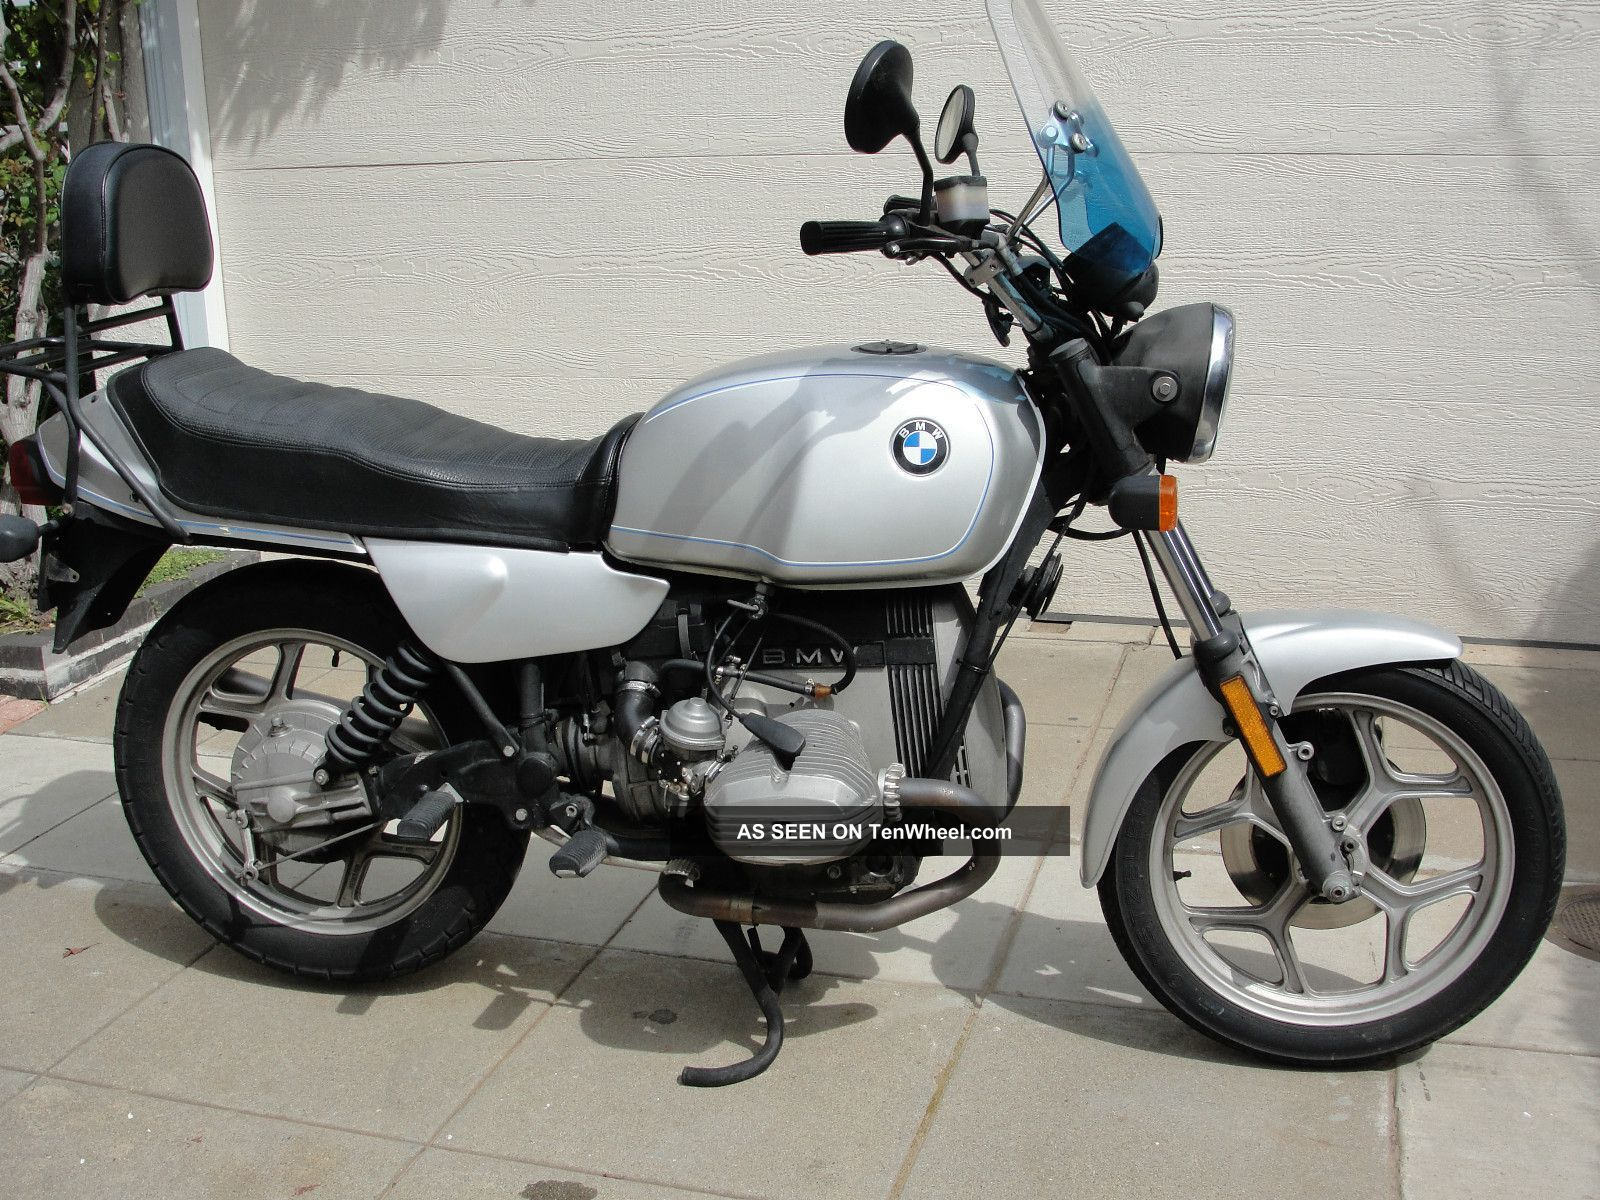 bmw motorcycle r65 series 1985. Black Bedroom Furniture Sets. Home Design Ideas